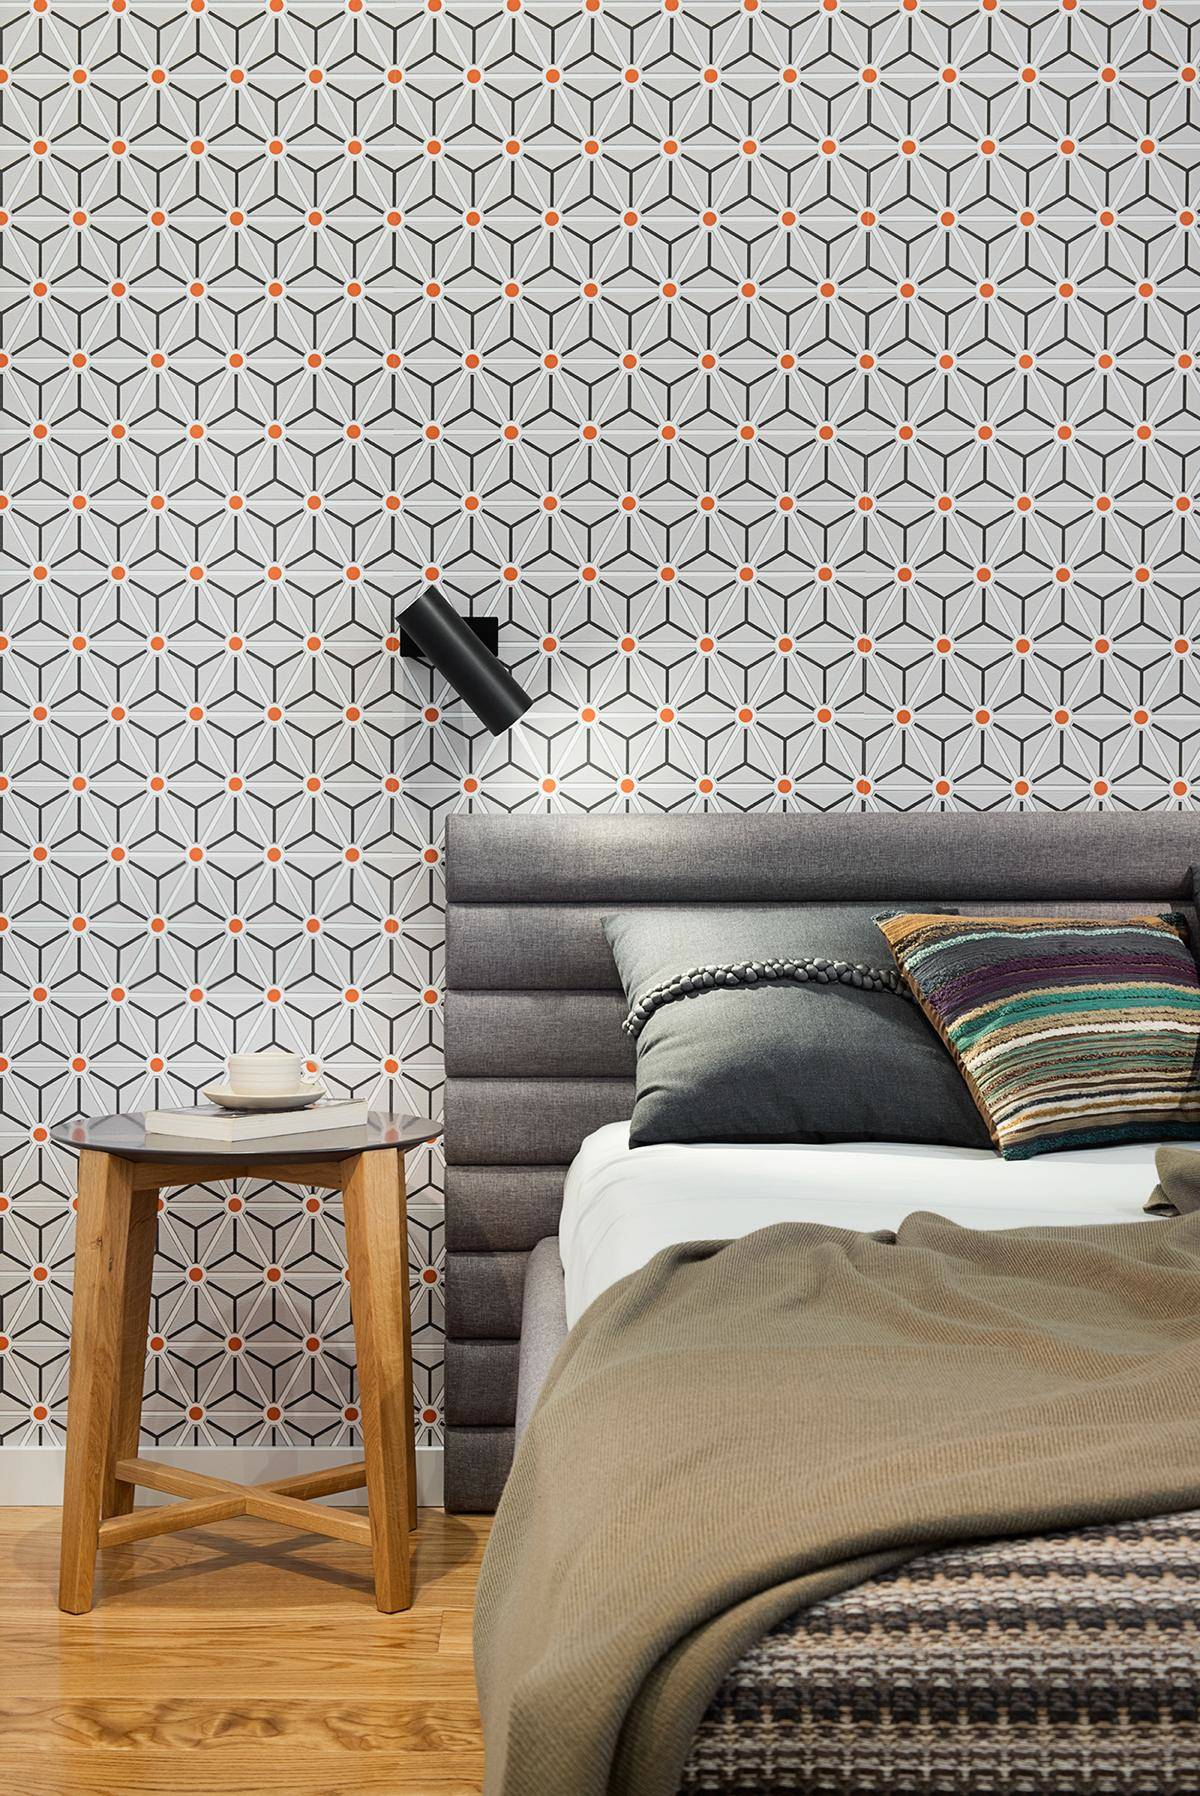 Retro Geometric Bedroom Theme - A mid century inspired apartment with modern geometric accents